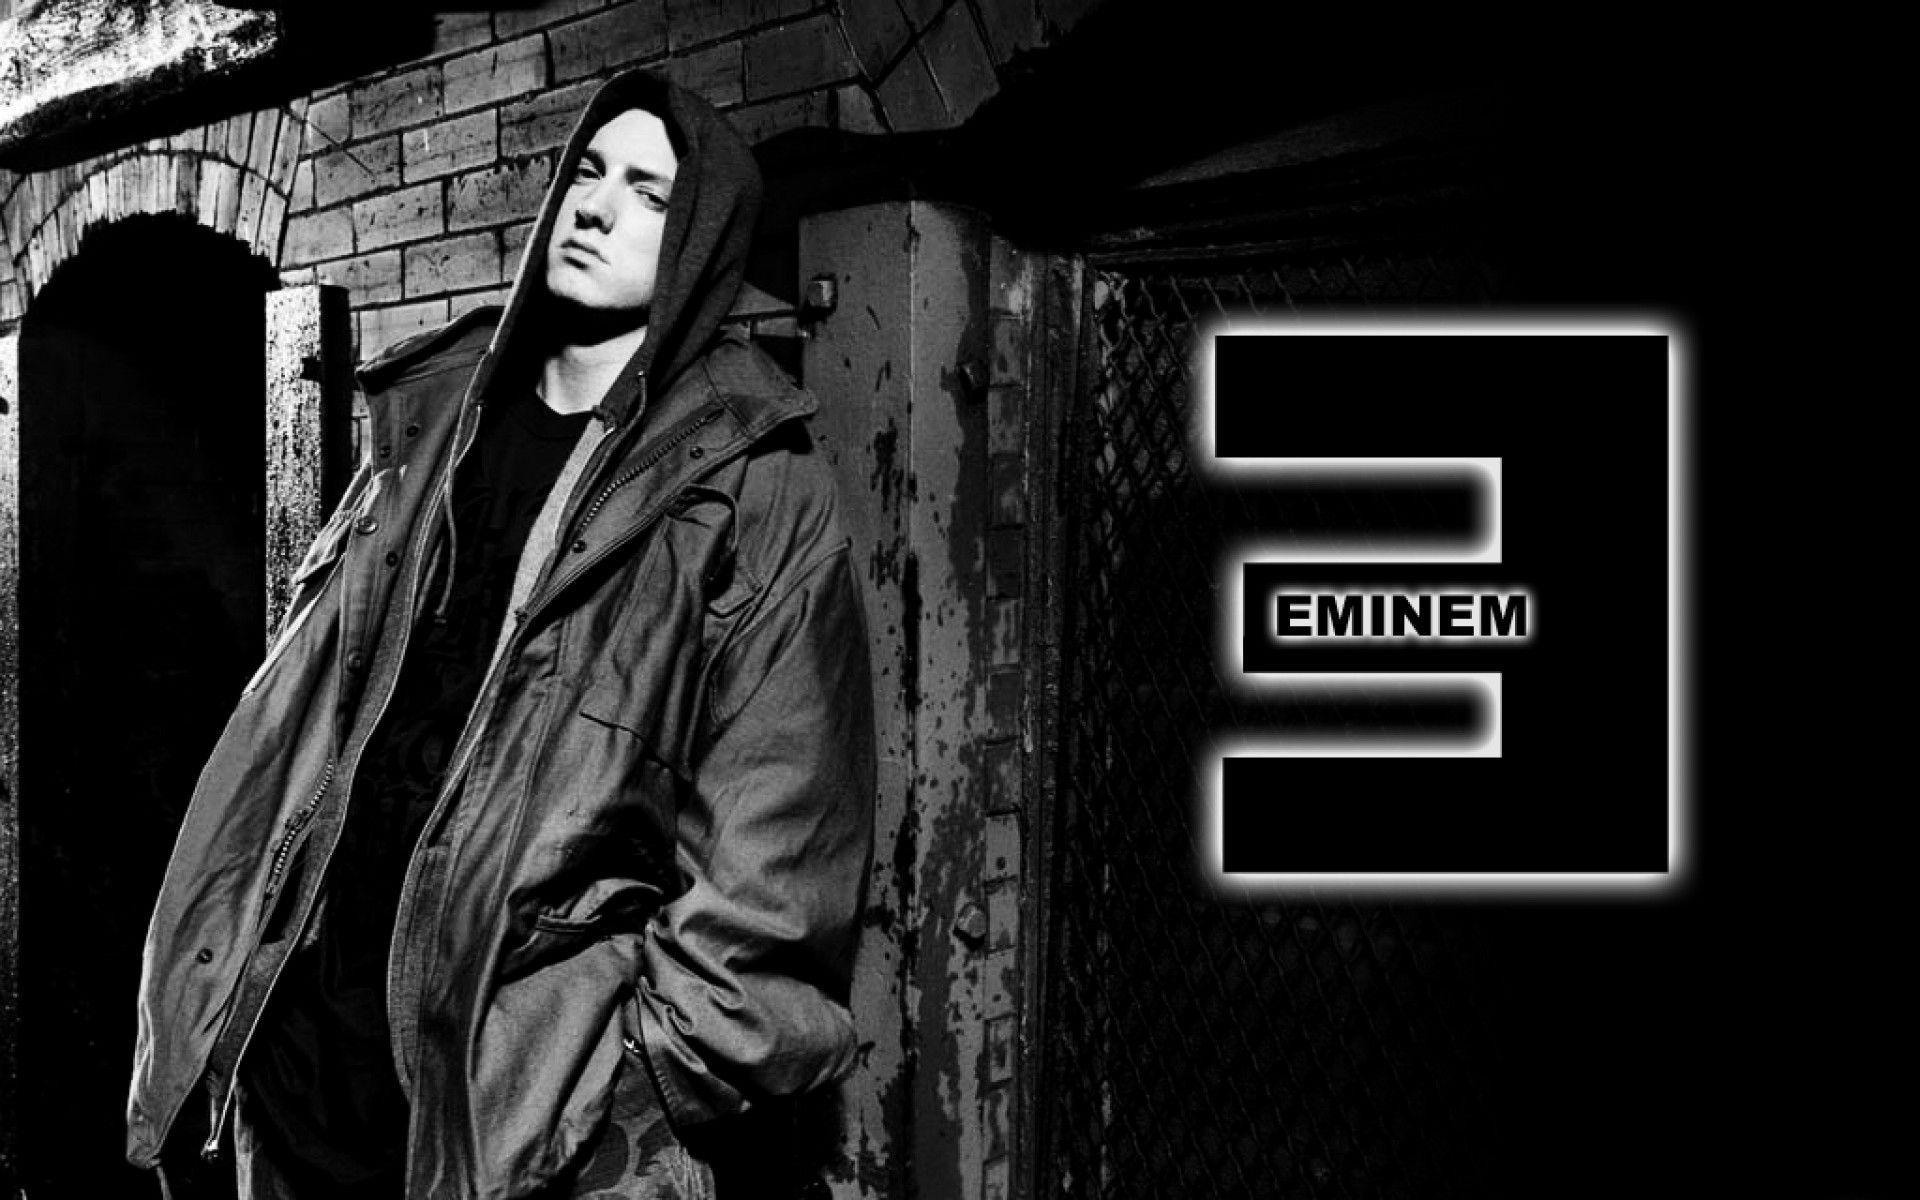 28 Eminem Wallpaper Hd 2016 On Wallpapersafari